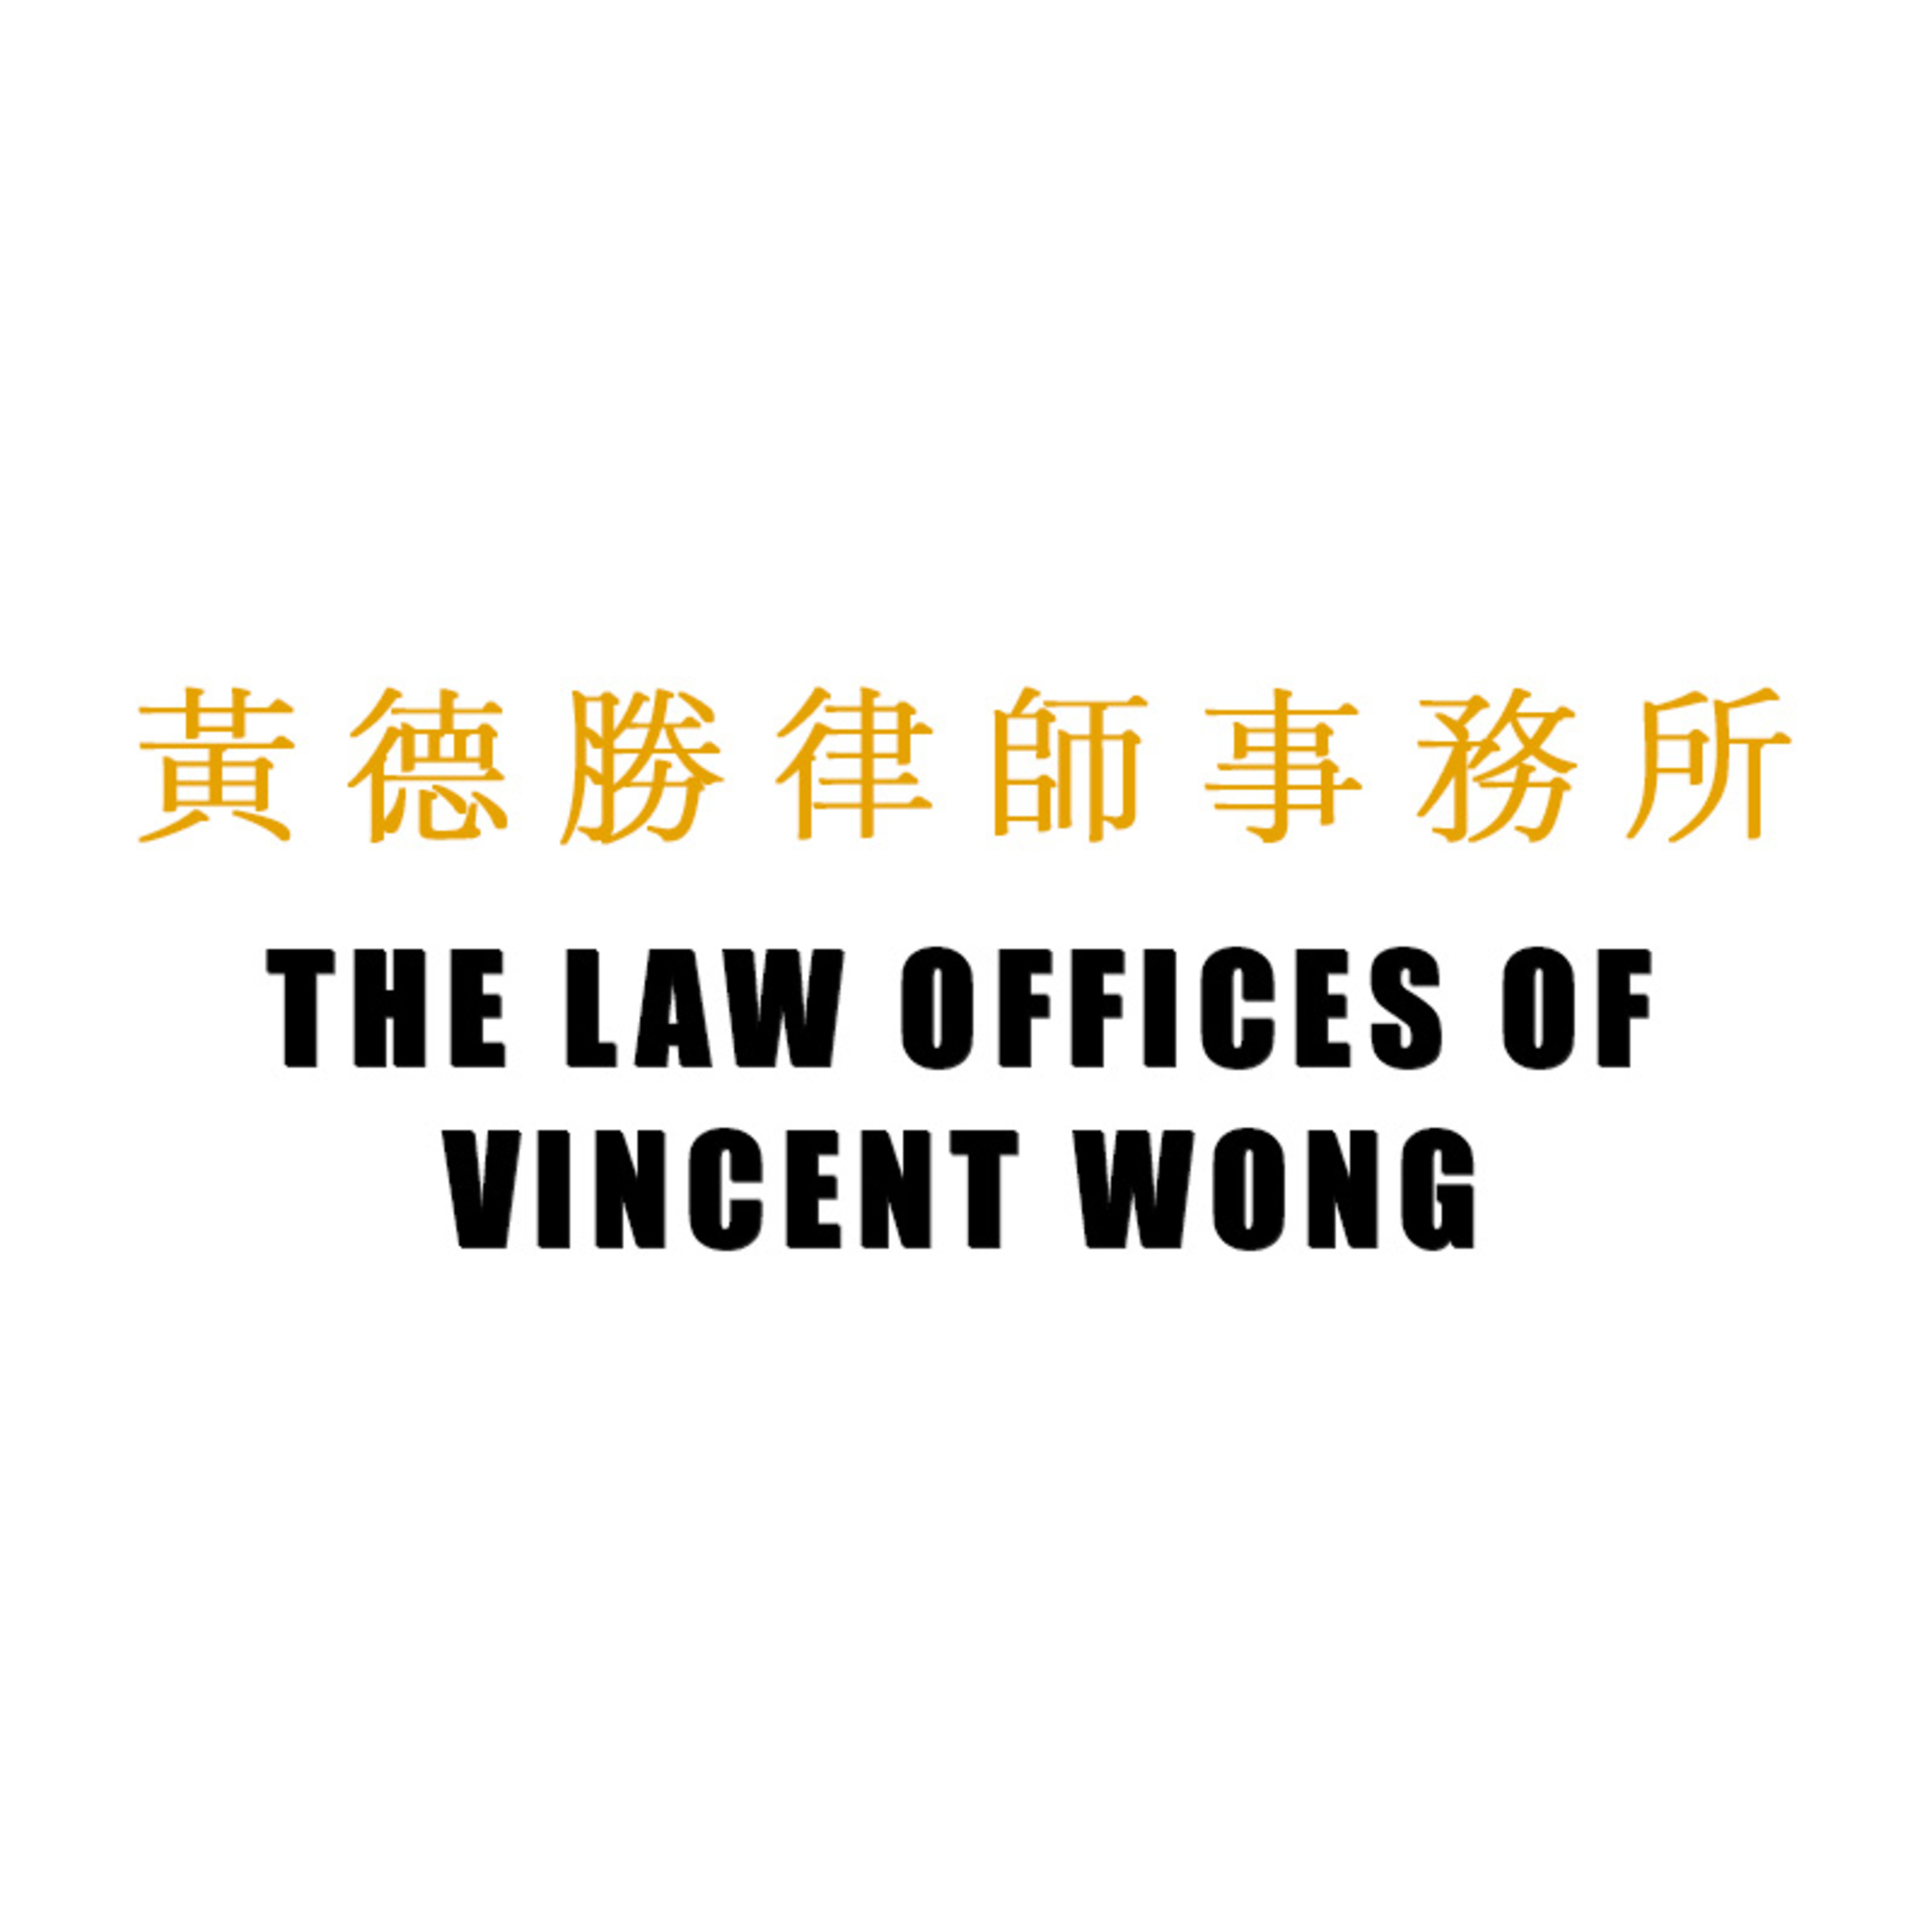 The Law Offices of Vincent Wong logo